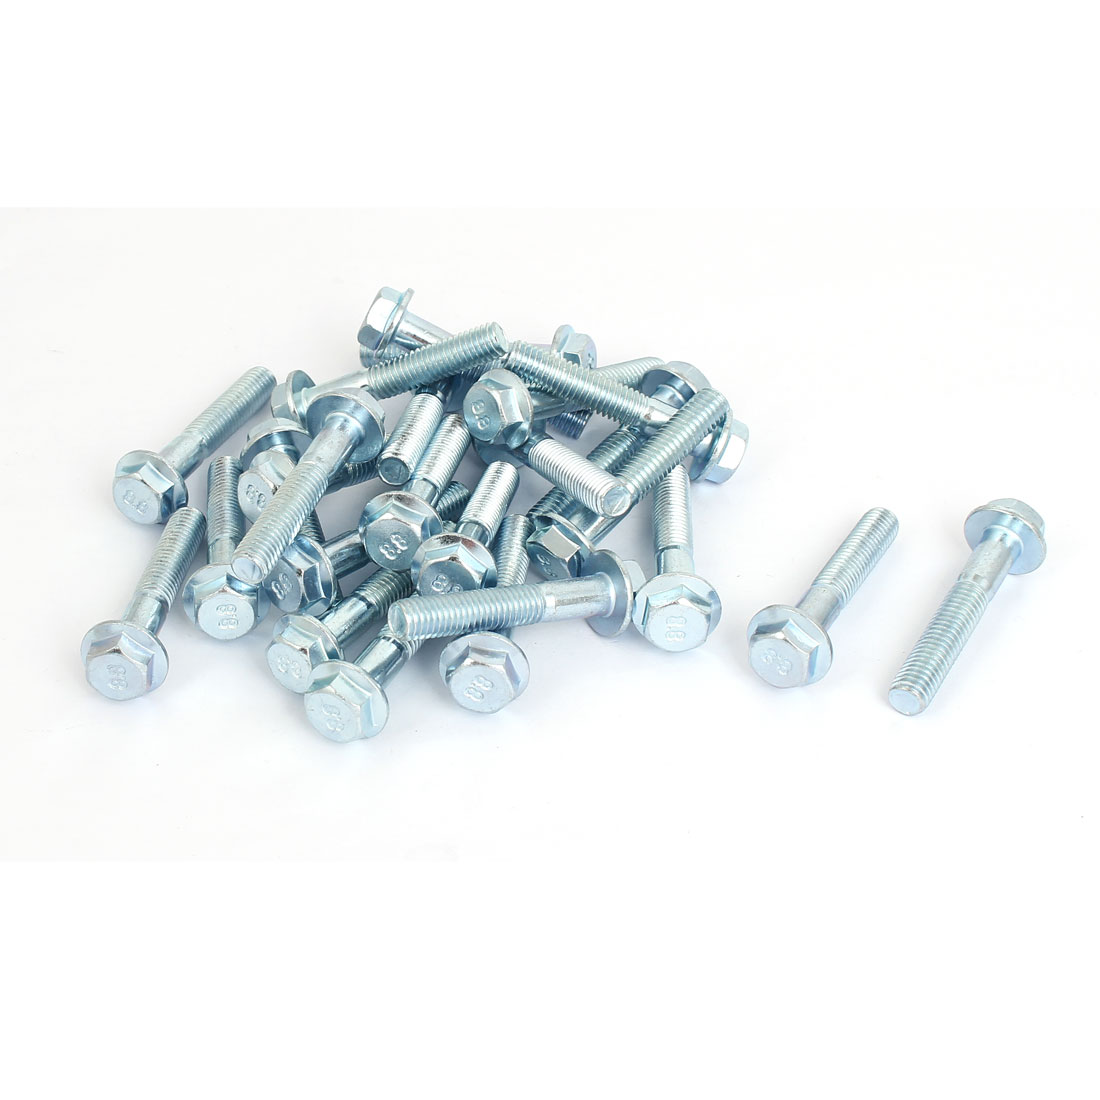 M8x45mm Grade 8.8 Half Thread Hexagon Hex Flange Bolts Screws 25pcs